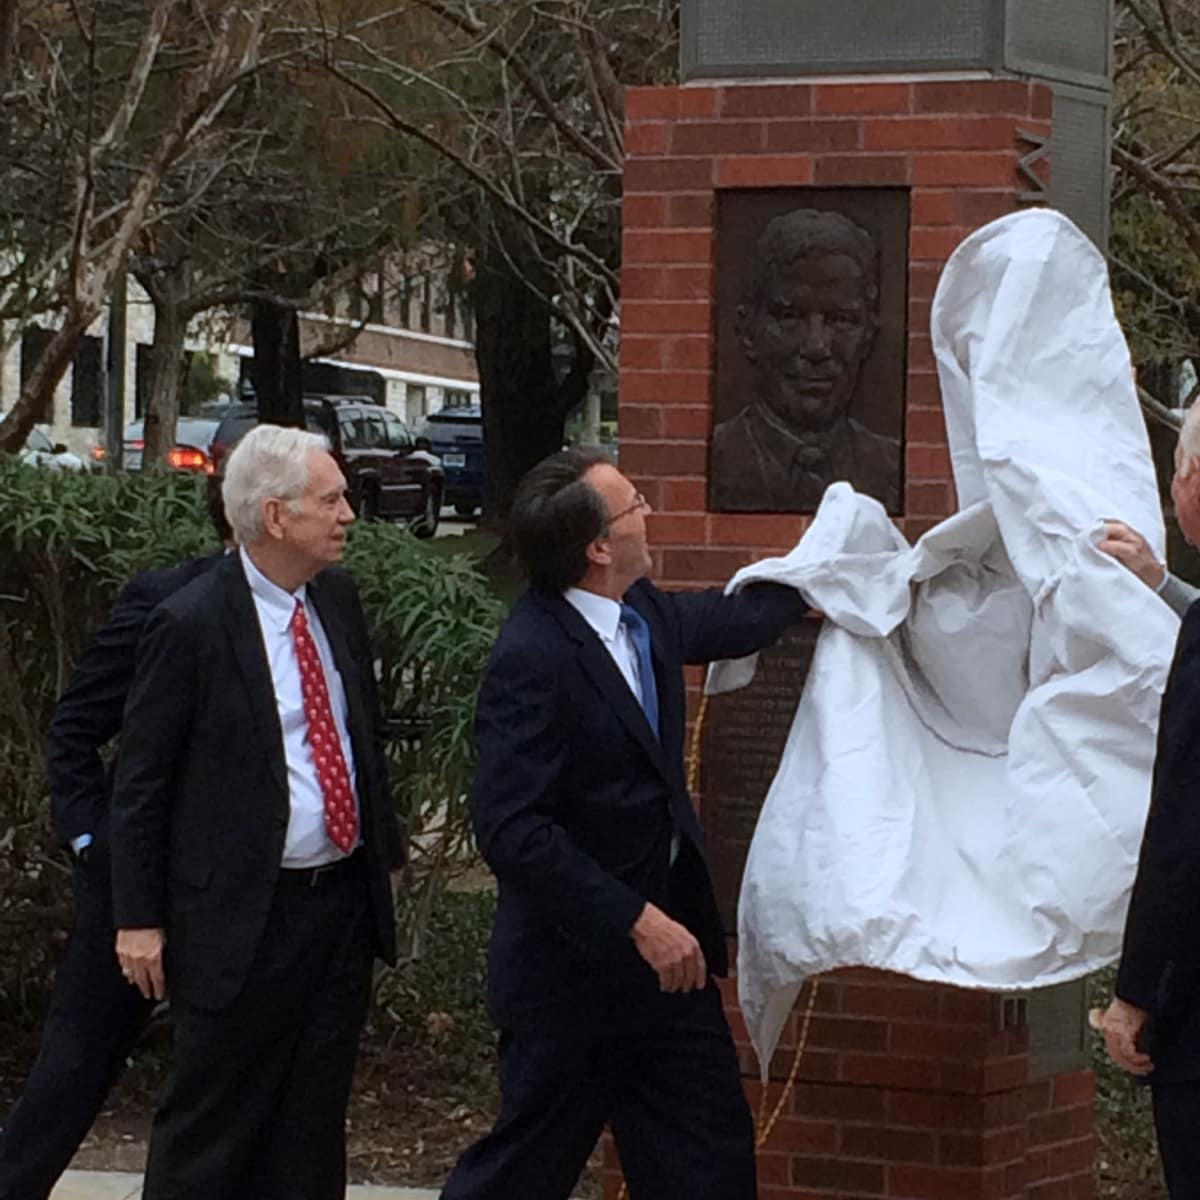 Houston, Mosbacher Bridge launch event, January 2016, statue